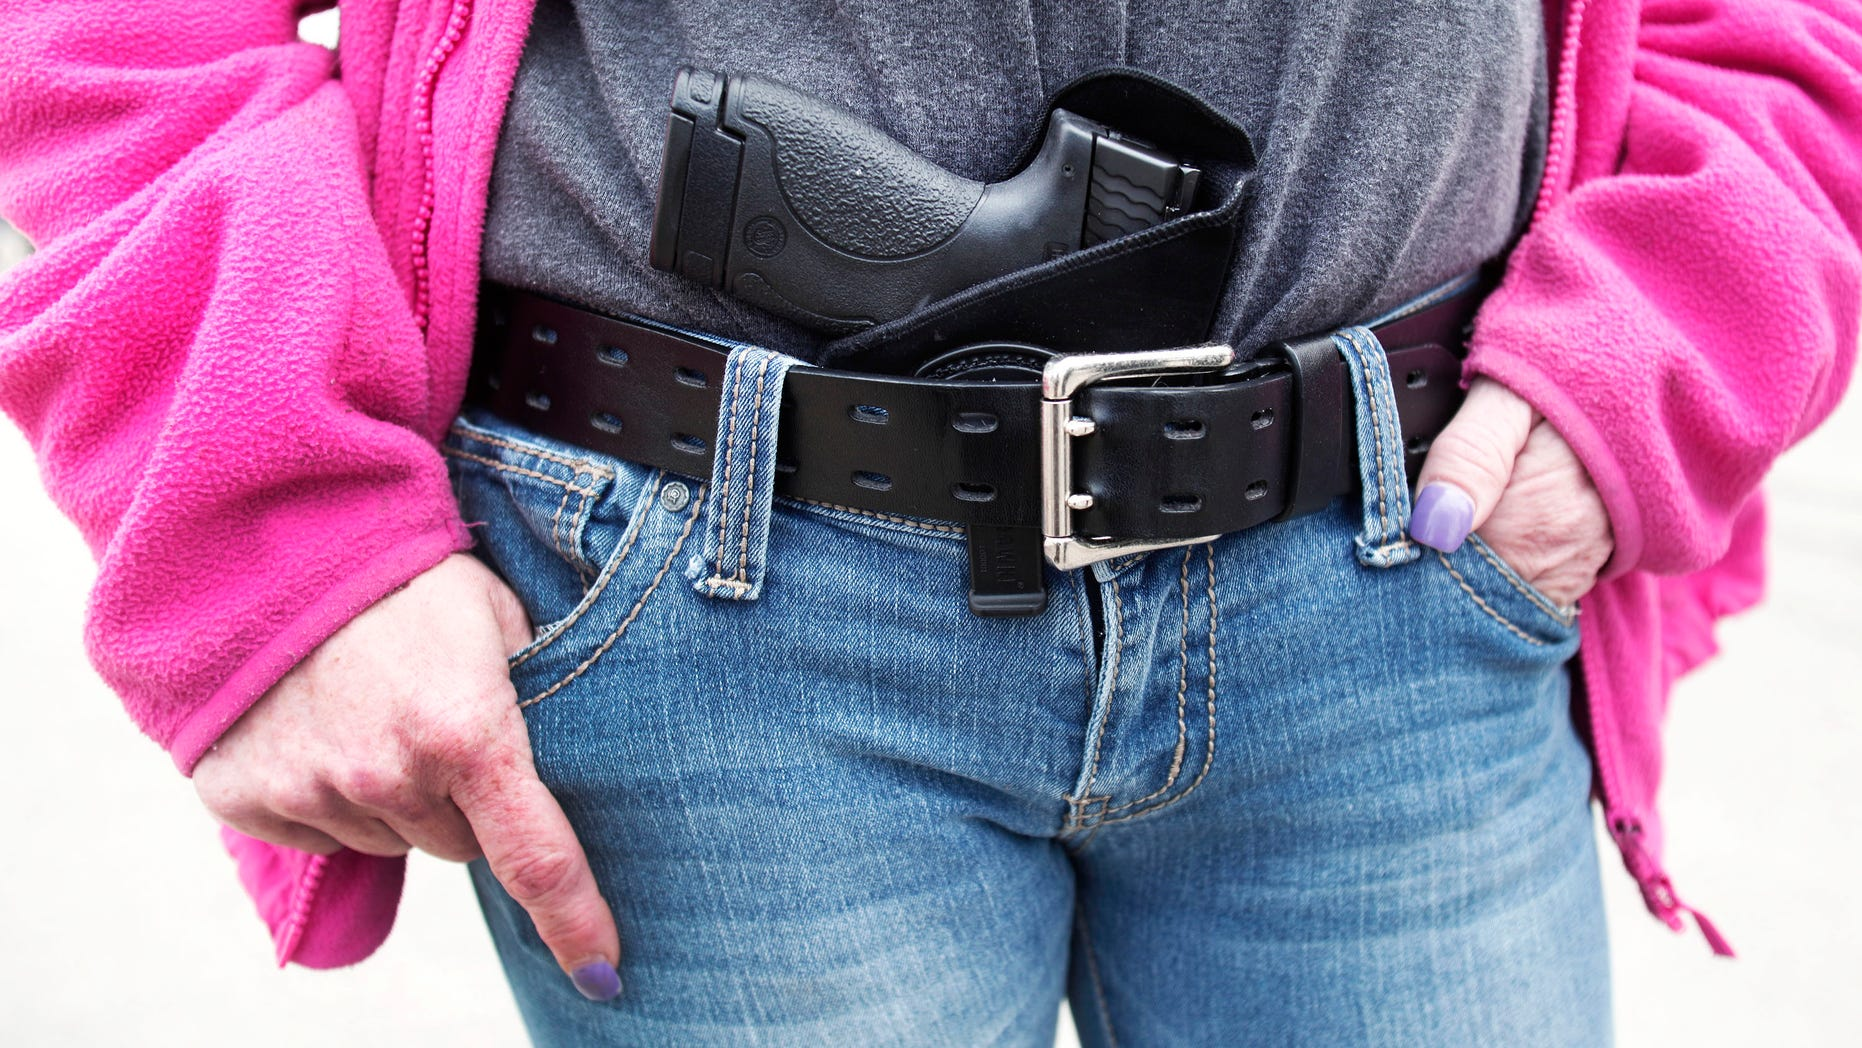 Gloria Lincoln-Thompson of Garden City, Mich., carries her Smith & Wesson Shield 9mm pistol in her belt while participating in a rally and march supporting Michigan's Open Carry law April 27, 2014 in Romulus, Mich. (Getty Images)